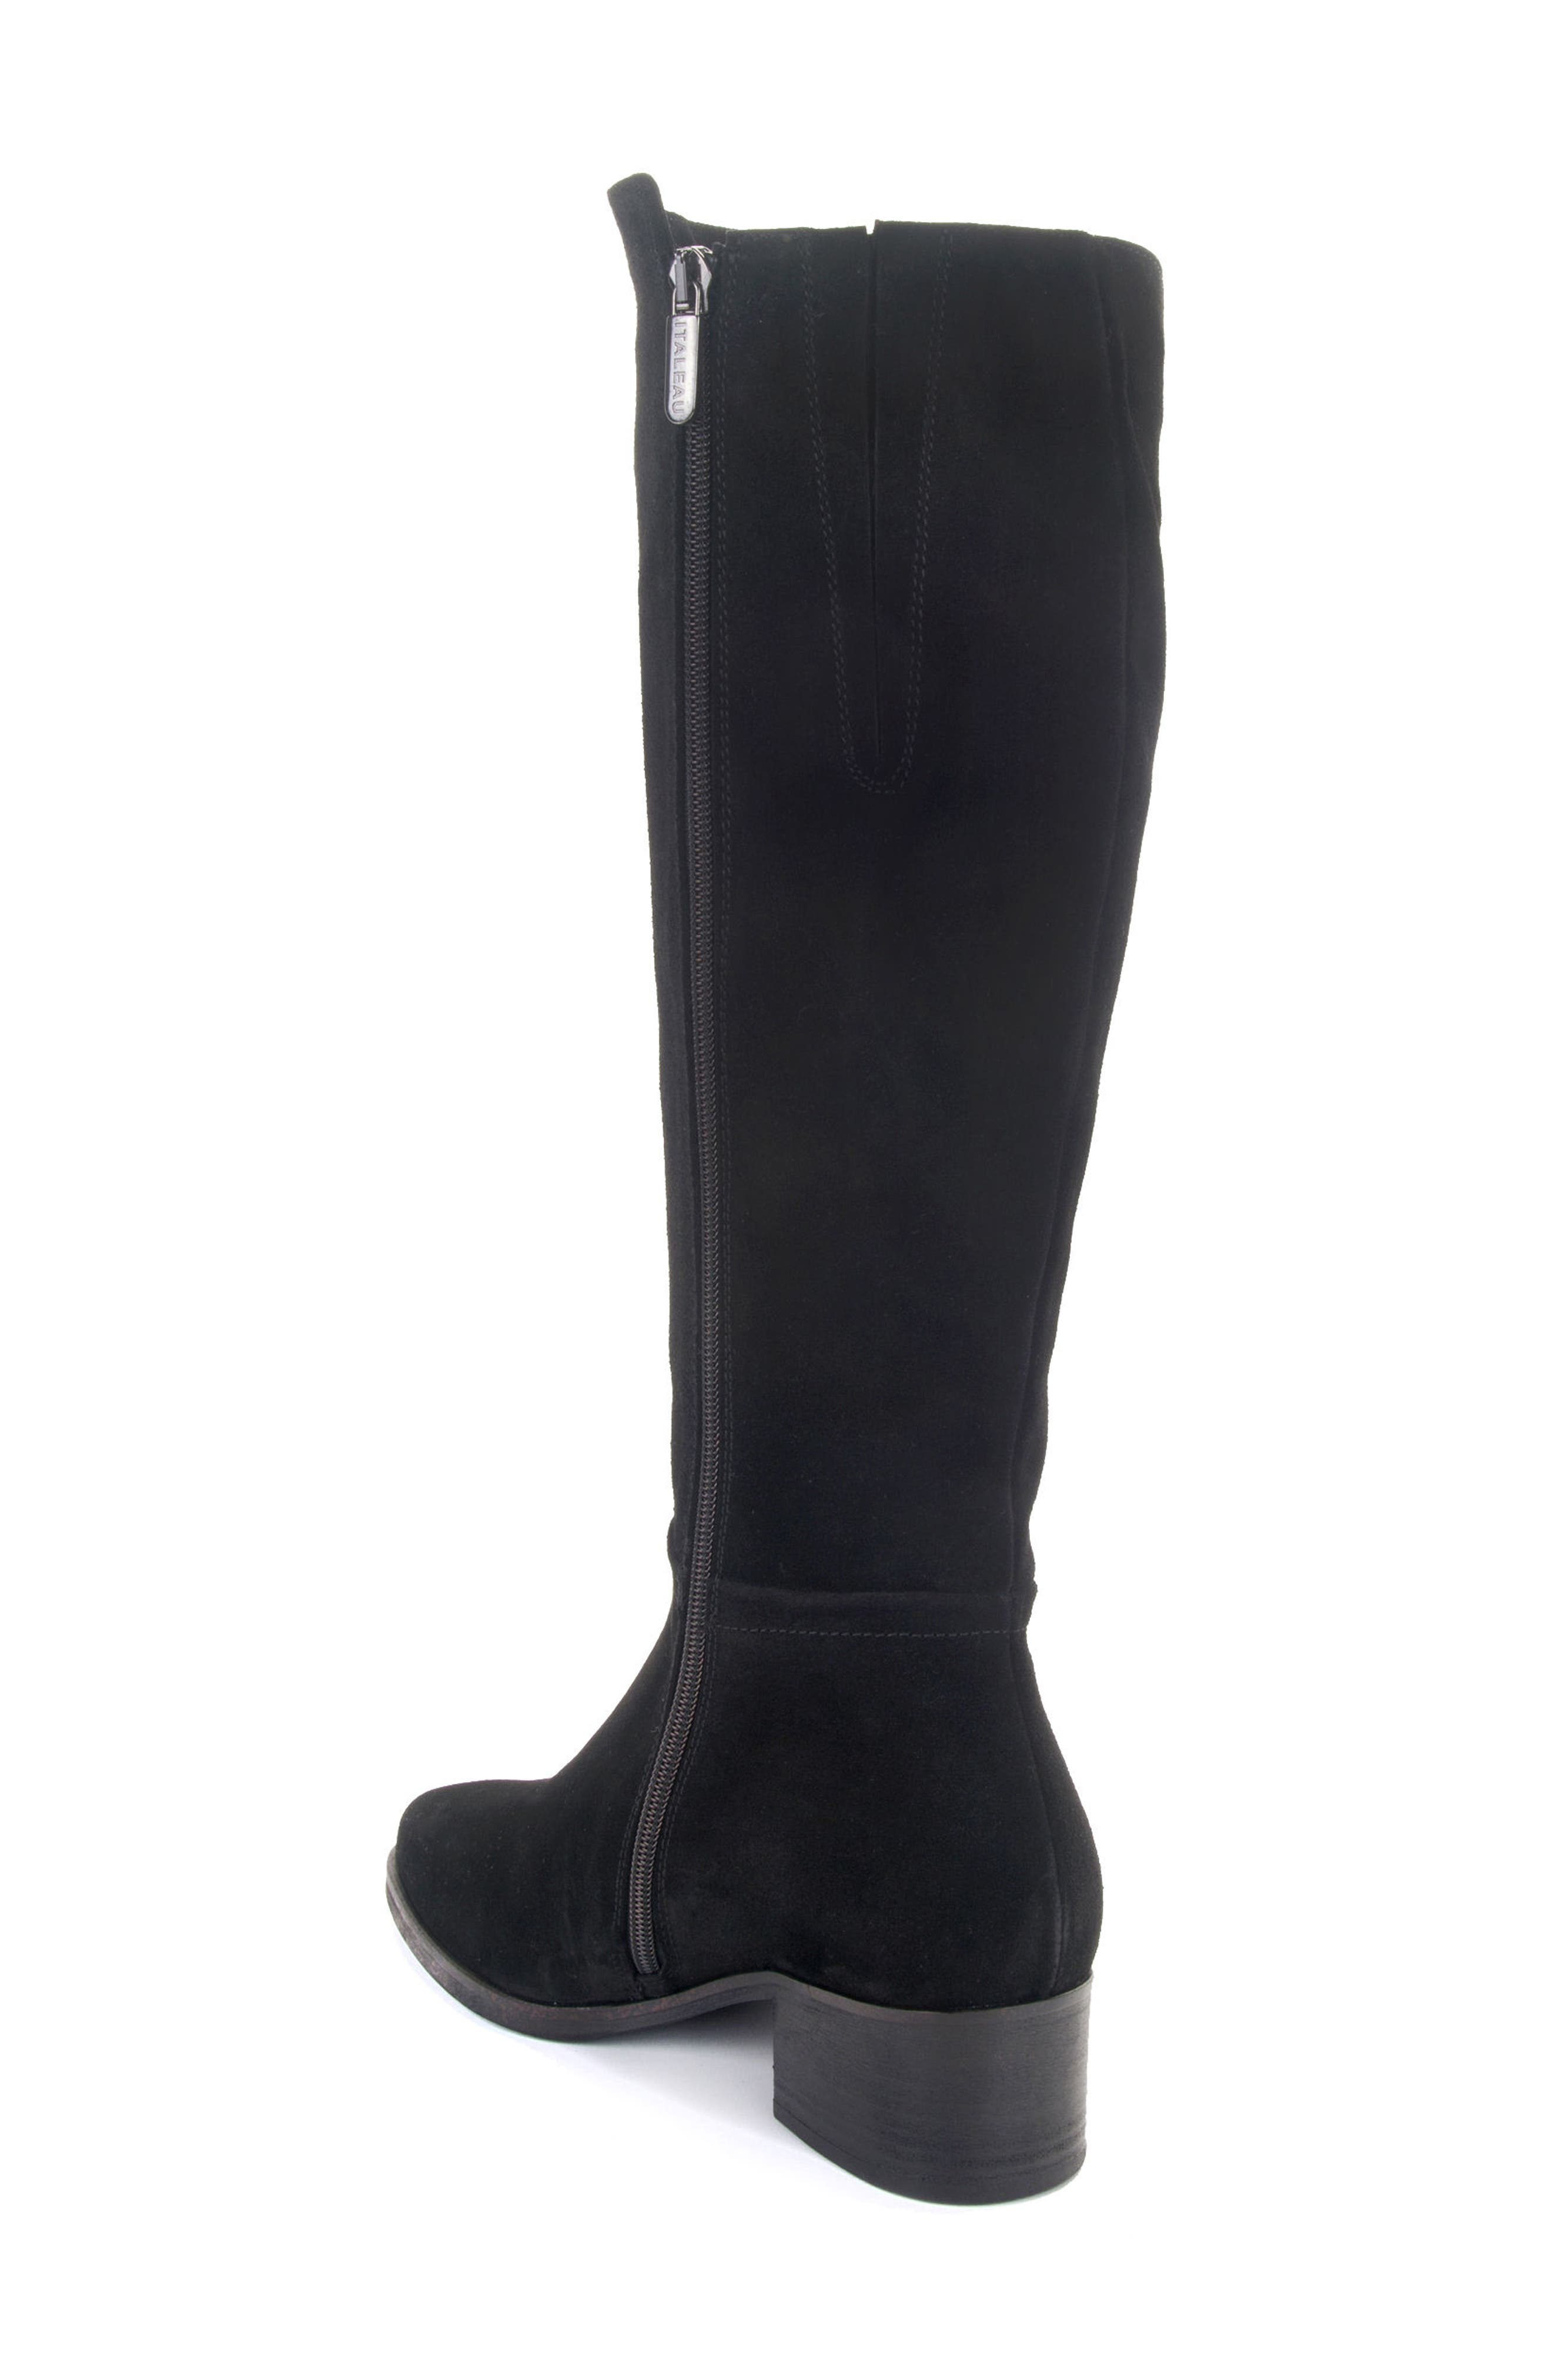 Fiamma Water Resistant Knee High Boot,                             Alternate thumbnail 2, color,                             010